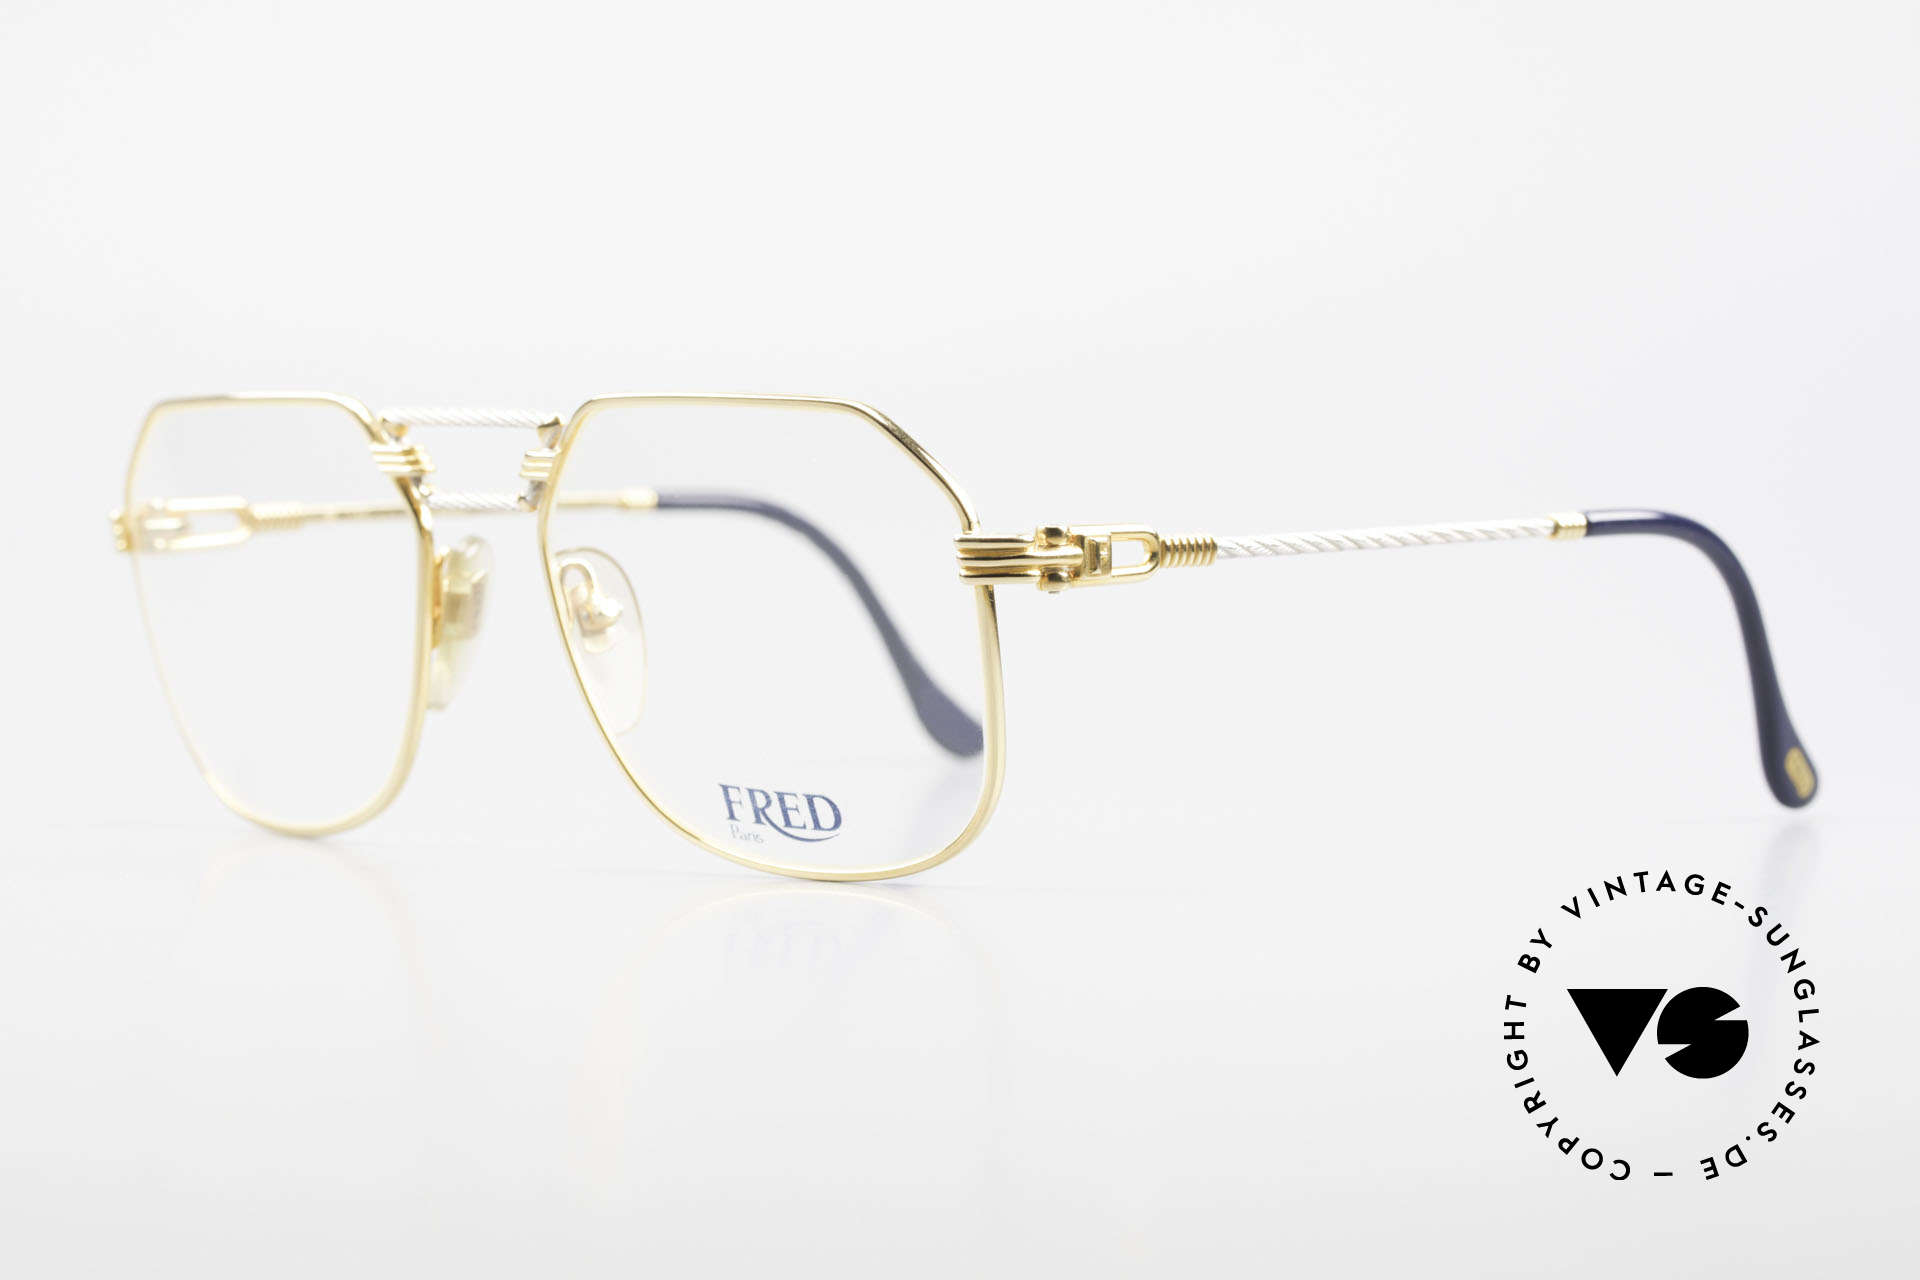 Fred Cap Horn - M Rare 80's Luxury Eyeglasses, Cap Horn: the southernmost headland of South America, Made for Men